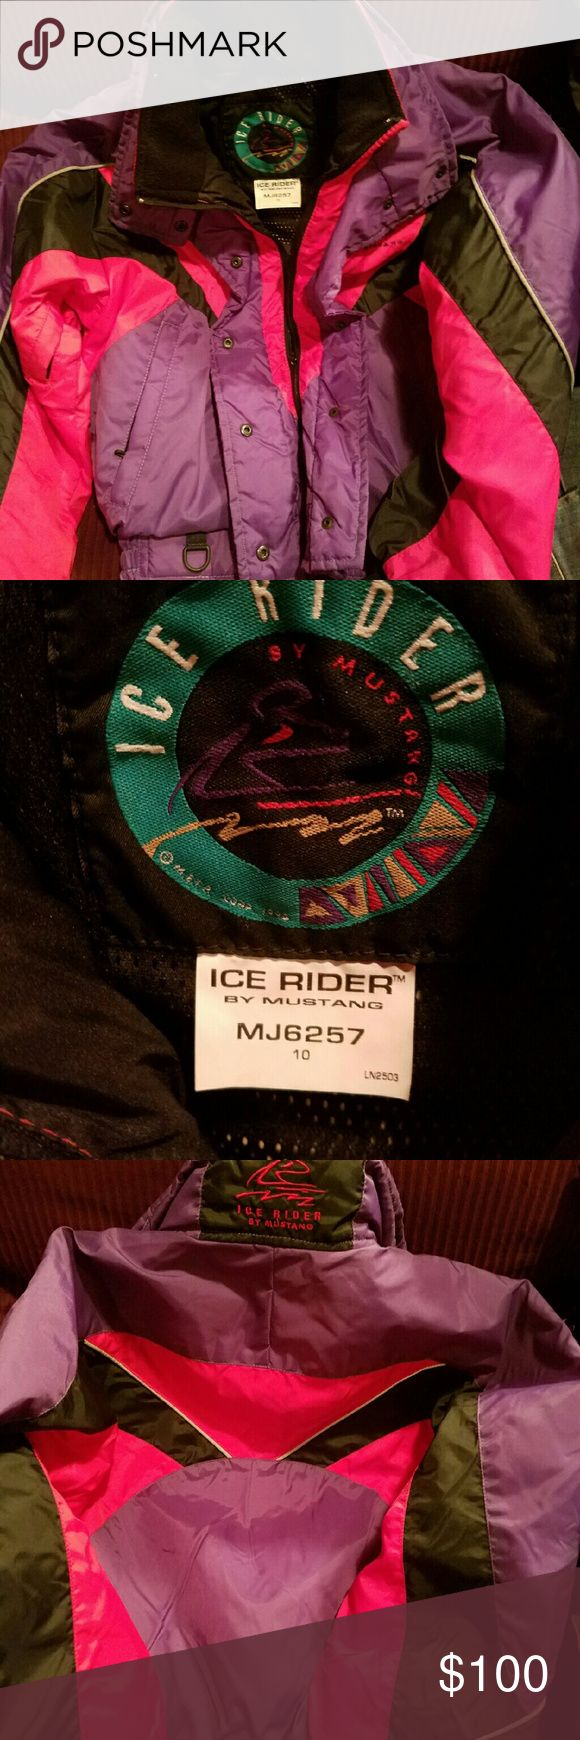 Ice rider Mustang snow suit Looks new life saving snow suit ice rider by Mustang mj6257 these were 300.00 and has floating vest inside mustang Jackets & Coats